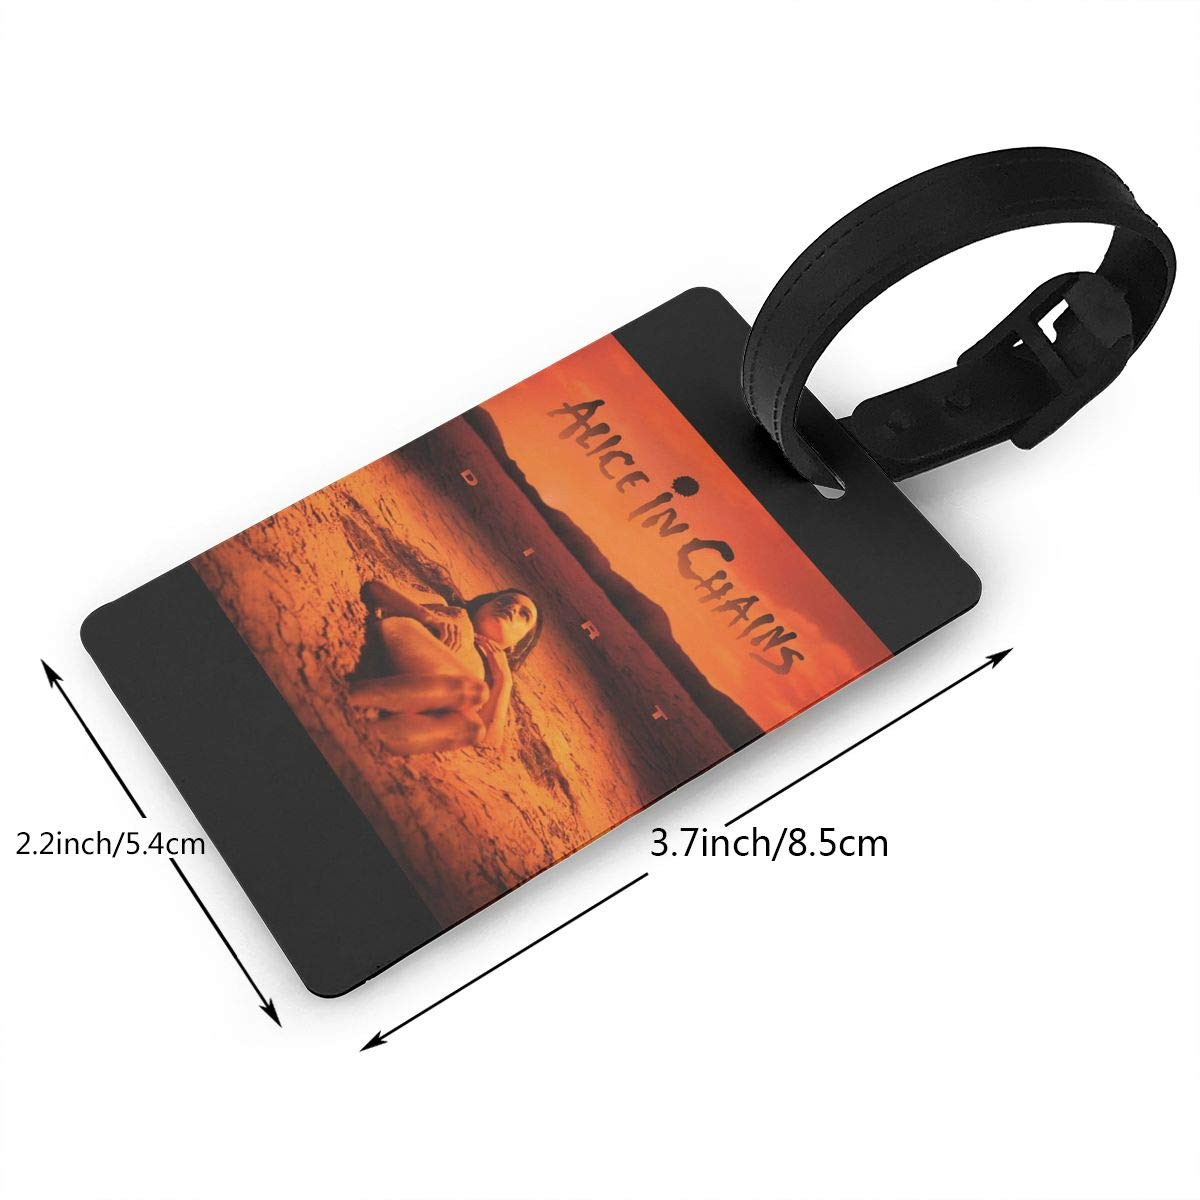 2.2x3.7inch HushuangPm Classic Alice in Chains Tags Luggage Etag Holders PVC Luggage Tags